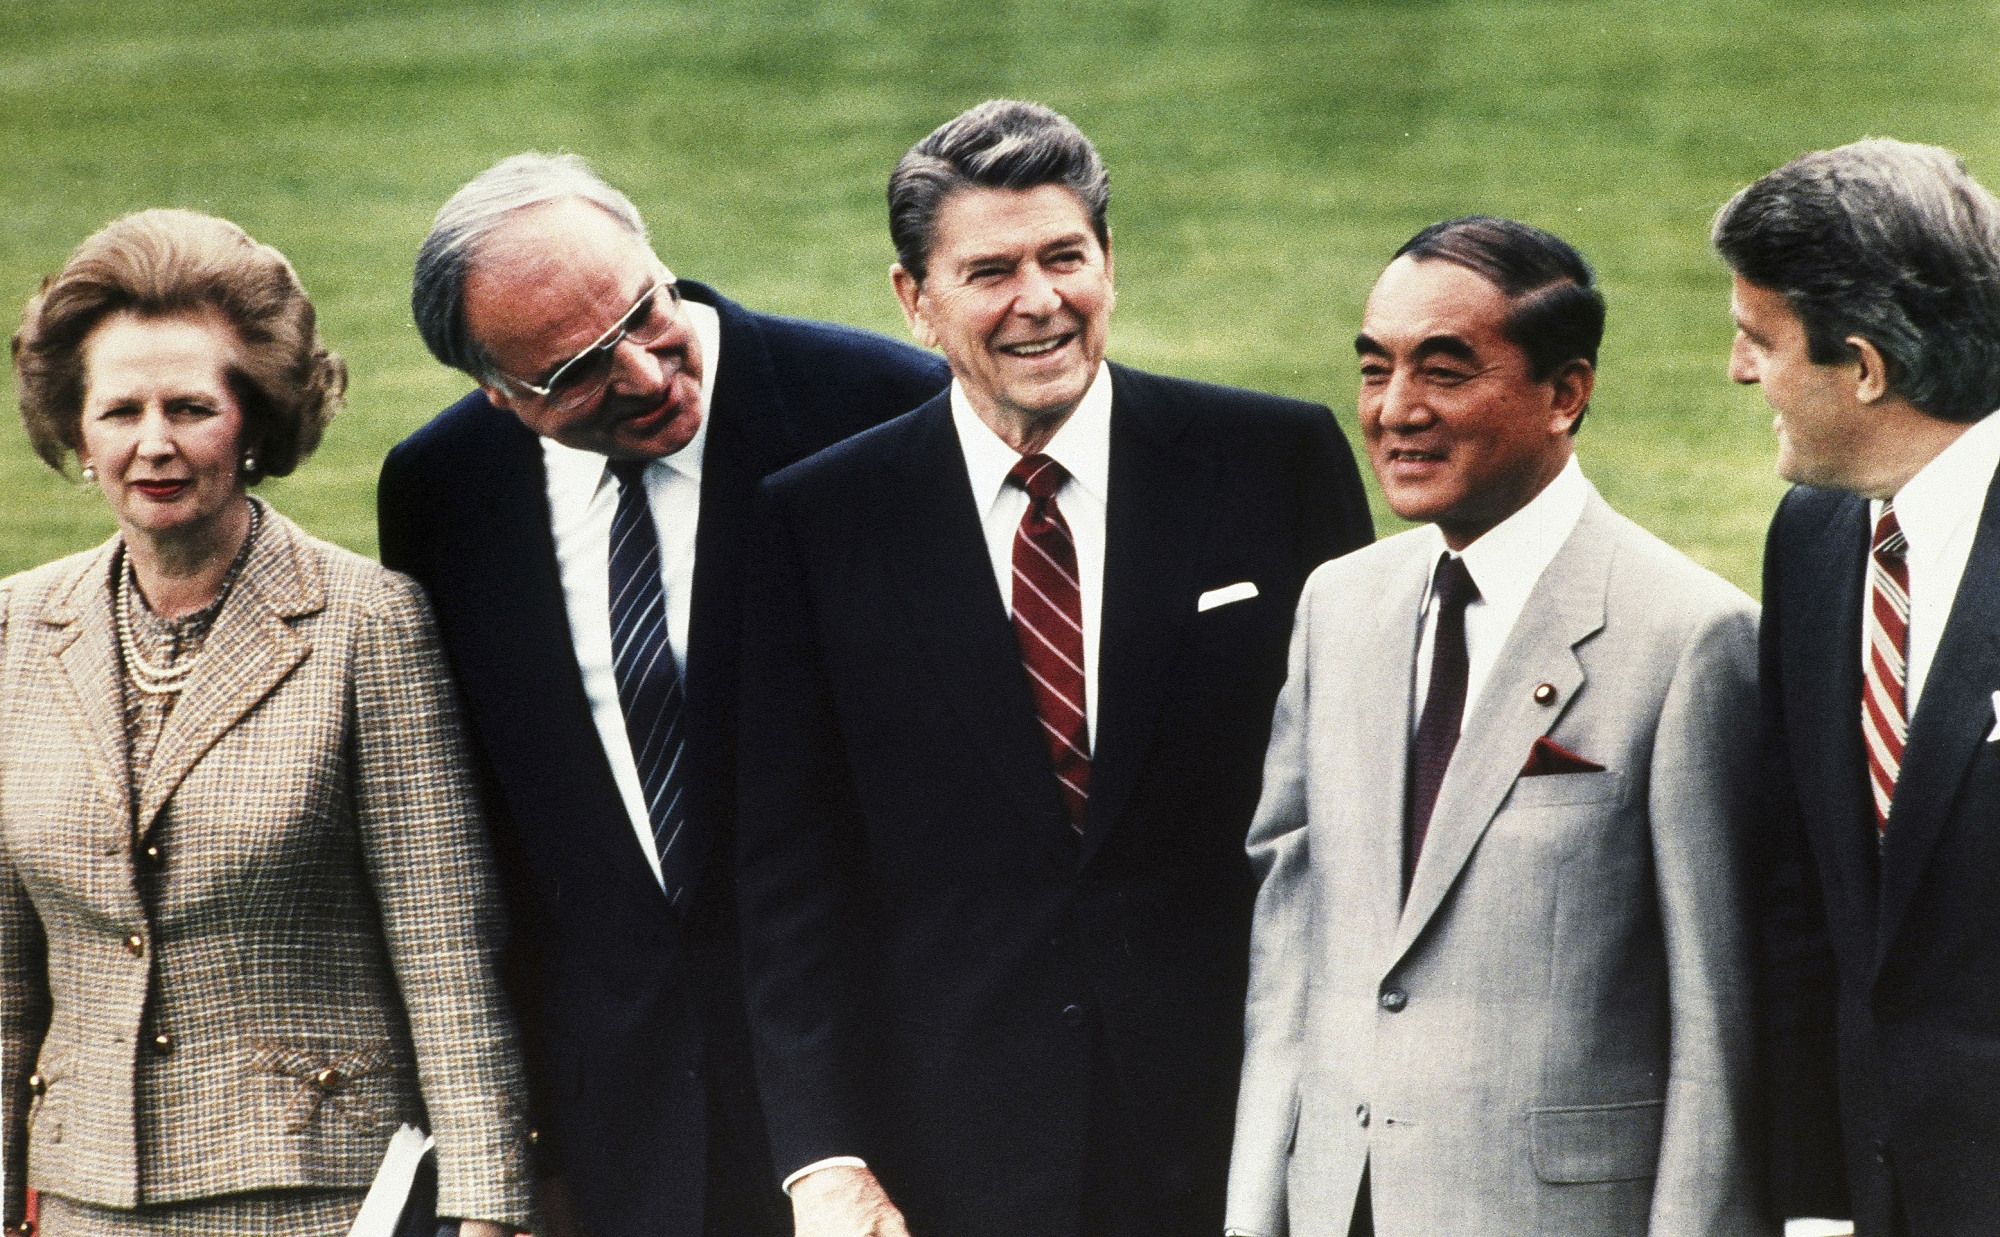 Left to right, British Prime Minister Margaret Thatcher, West German Chancellor Helmut Kohl, U.S. President Ronald Reagan, Japanese Prime Minister Yasuhiro Nakasone and Canadian Prime Minister Brian Mulroney pose during the World Economic Summit in Bonn, Germany, on May 3, 1985. | AP